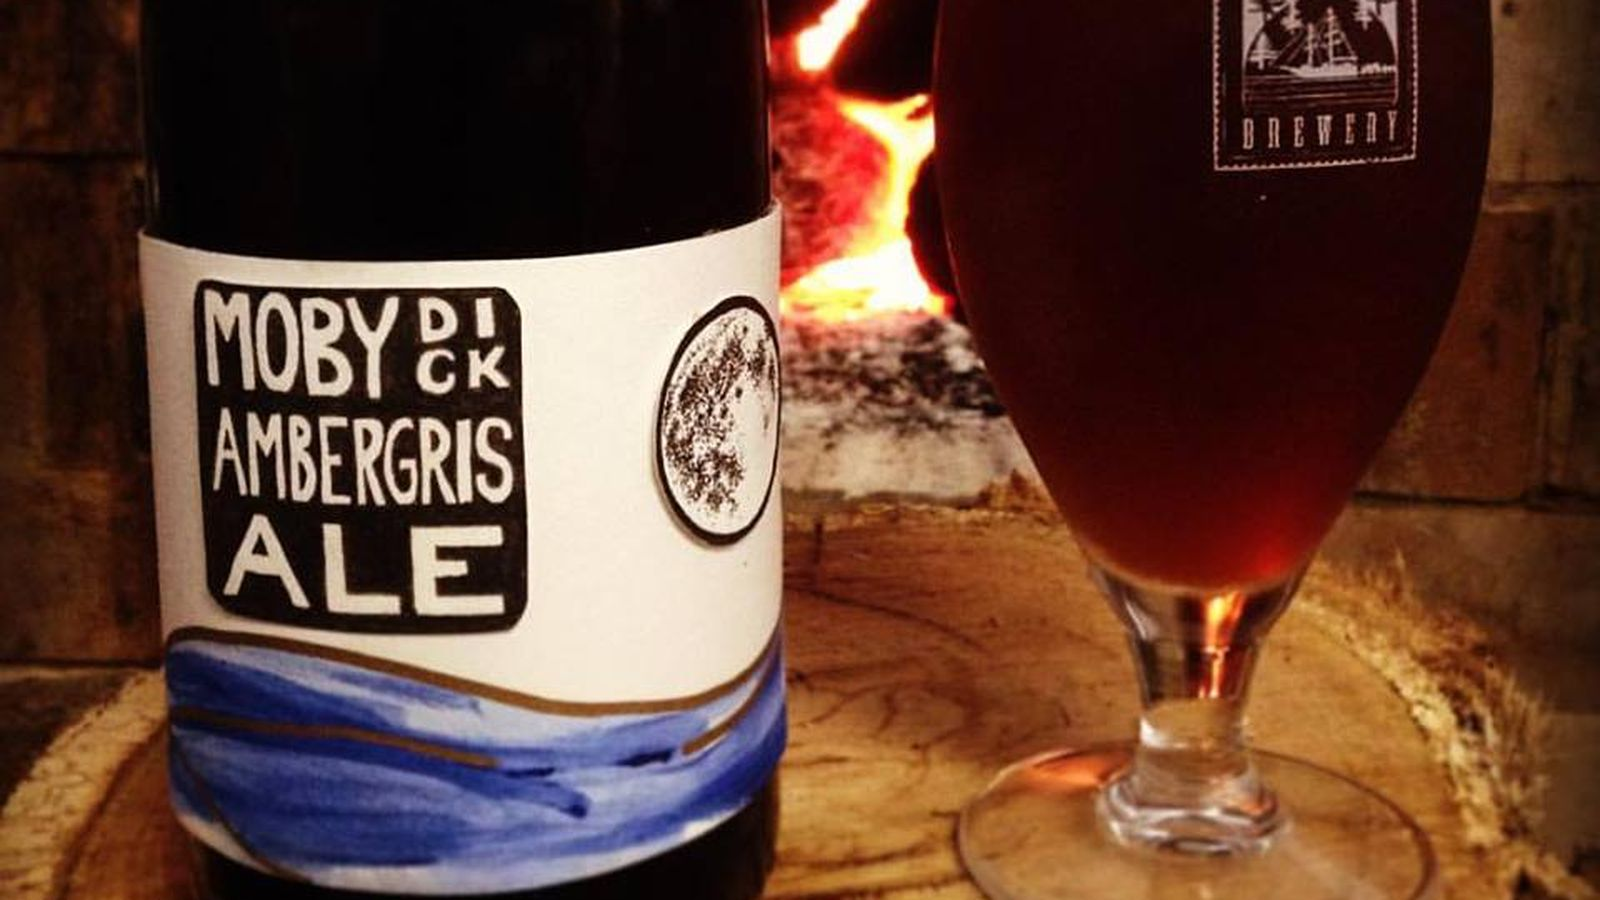 Moby Dick Ambegris Ale